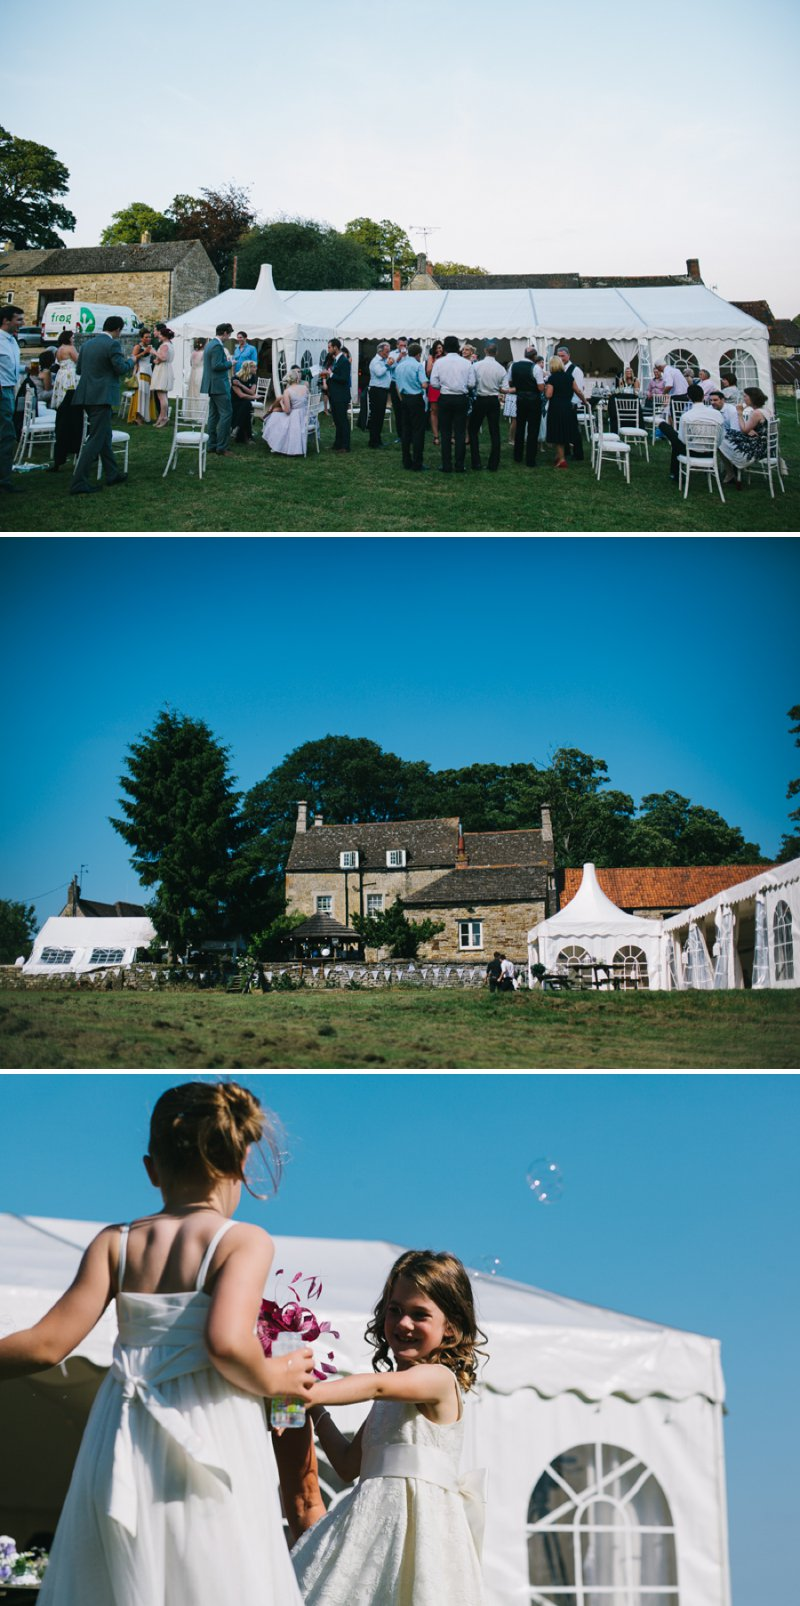 Marquee Wedding With A Pastel Colour Scheme At The Fox And Hounds Inn Rutland With Bride In Bespoke Kula Tsurdiu Gown And Groom In Reiss Suit 5